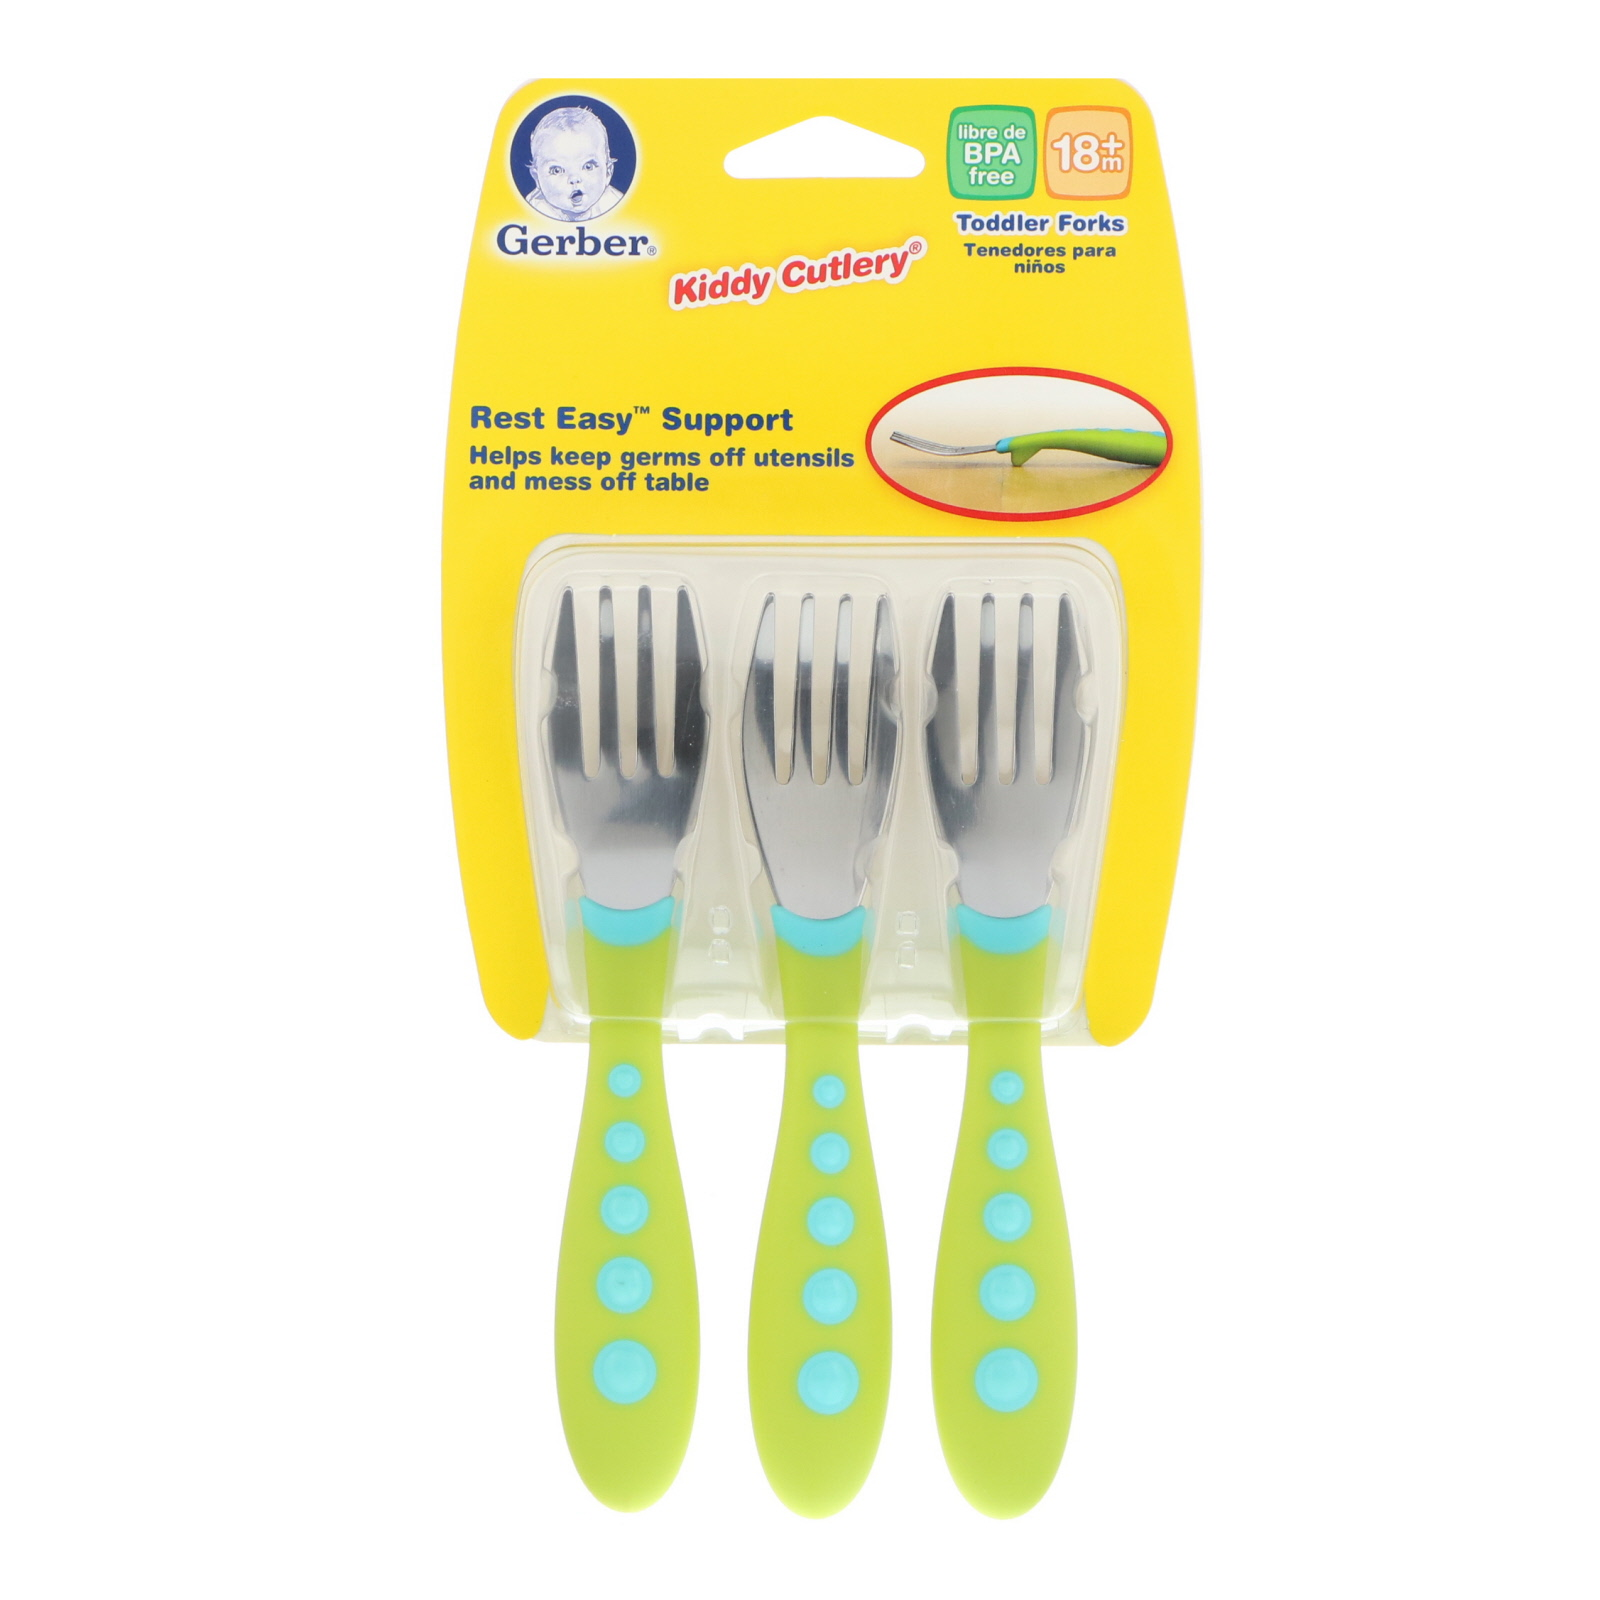 Gerber Stainless Steel Tip Kiddy Cutlery 6-Piece Set Pink//Green by NUK